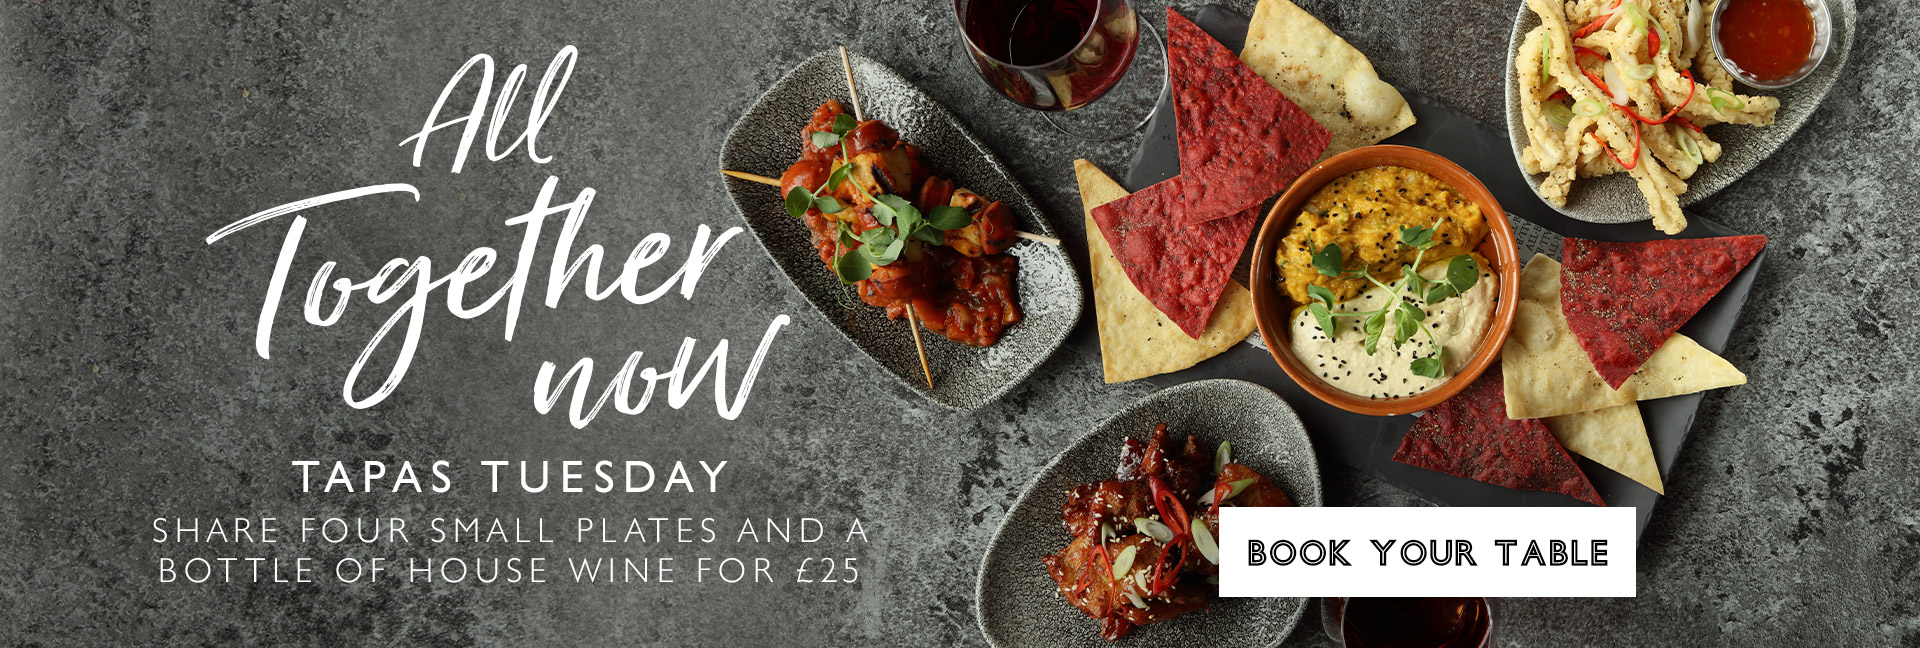 Tapas Tuesday at All Bar One Charing Cross - Book now